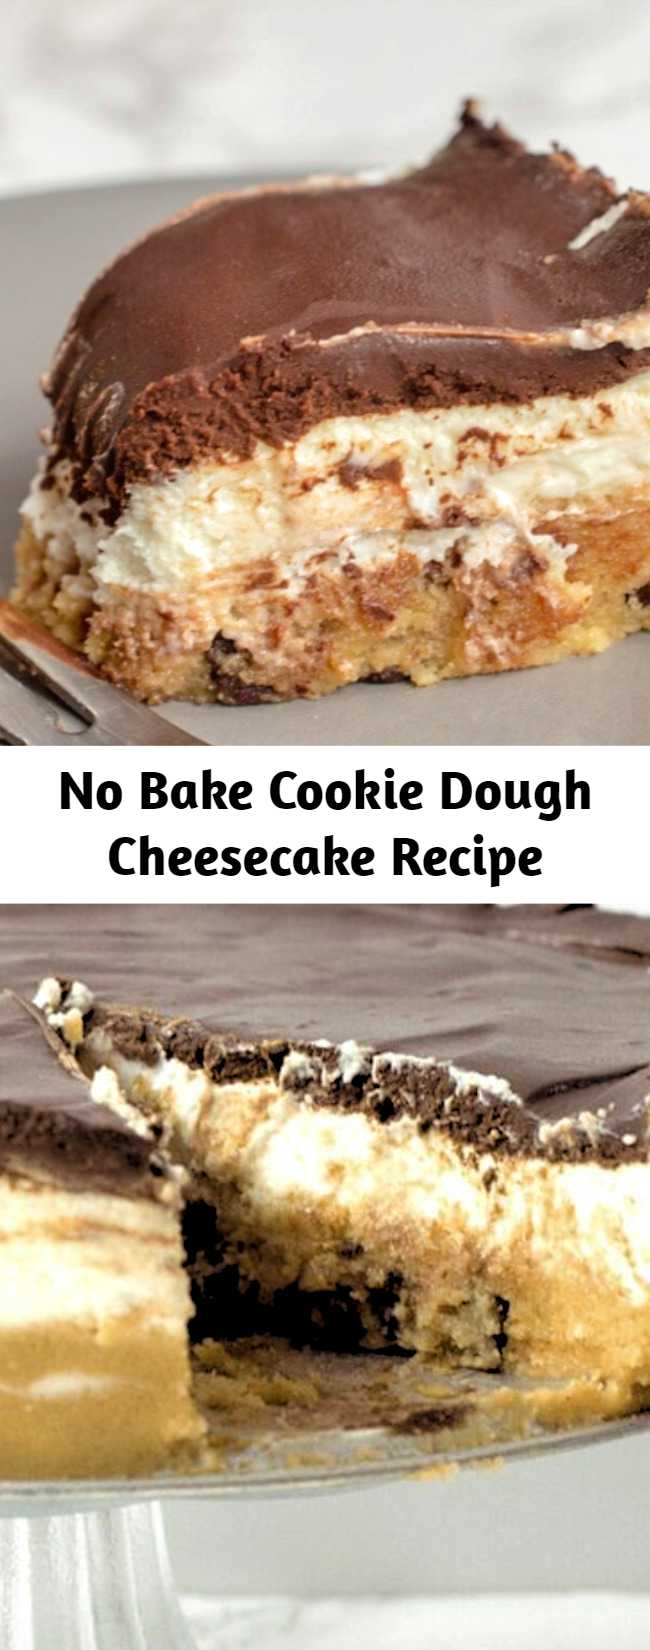 With a layer of raw chocolate chip cookie dough, a layer of creamy cheesecake, and a layer of rich chocolate ganache my No-Bake Cookie Dough Cheesecake may be the best dessert ever. This easy recipe is low carb, keto, gluten-free, grain-free, sugar-free, and Trim Healthy Mama friendly. #lowcarb #lowcarbrecipes #lowcarbdiet #keto #ketorecipes #ketodiet #thm #trimhealthymama #glutenfree #grainfree #glutenfreerecipes #recipes #cheesecake #nobake #desserts #dessertrecipes #ketodessert #lowcarbdessert